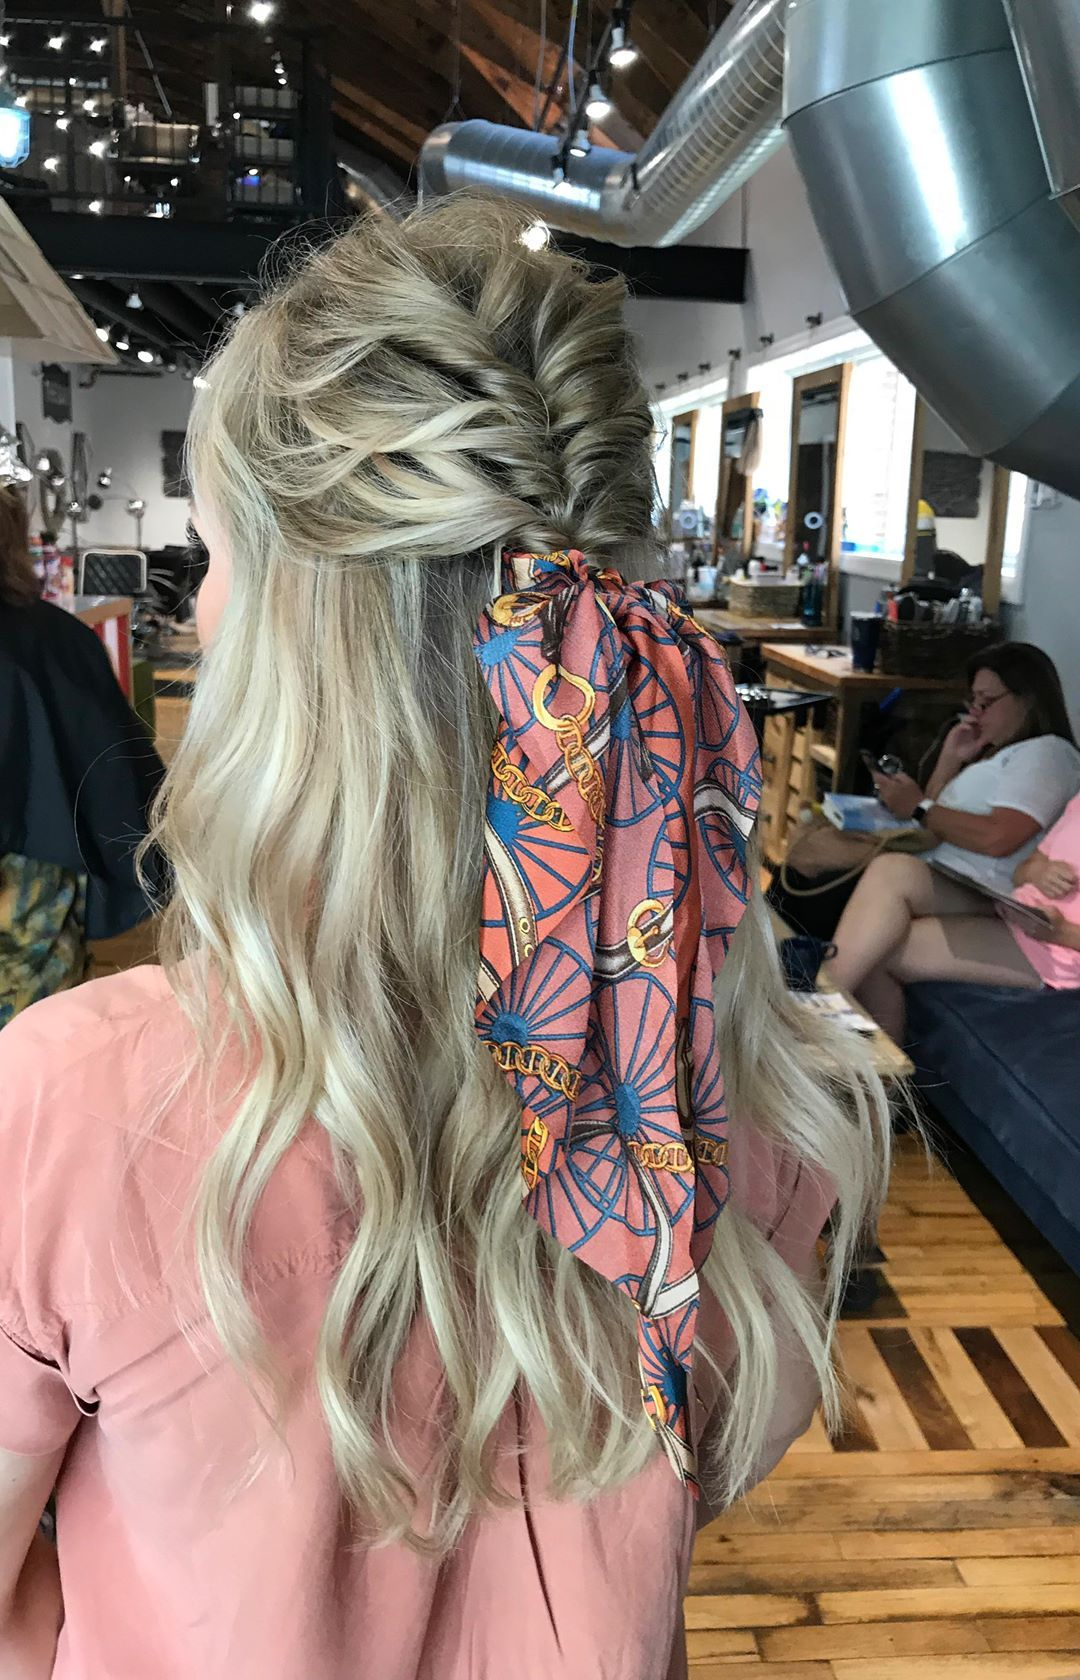 Cute Hairstyle With Hair Extensions A Cup Full Of Sass Acupfullofsass On Instagram Hairstyles Cutehairstyles E Hair Lengths Easy Hairstyles Hair Styles